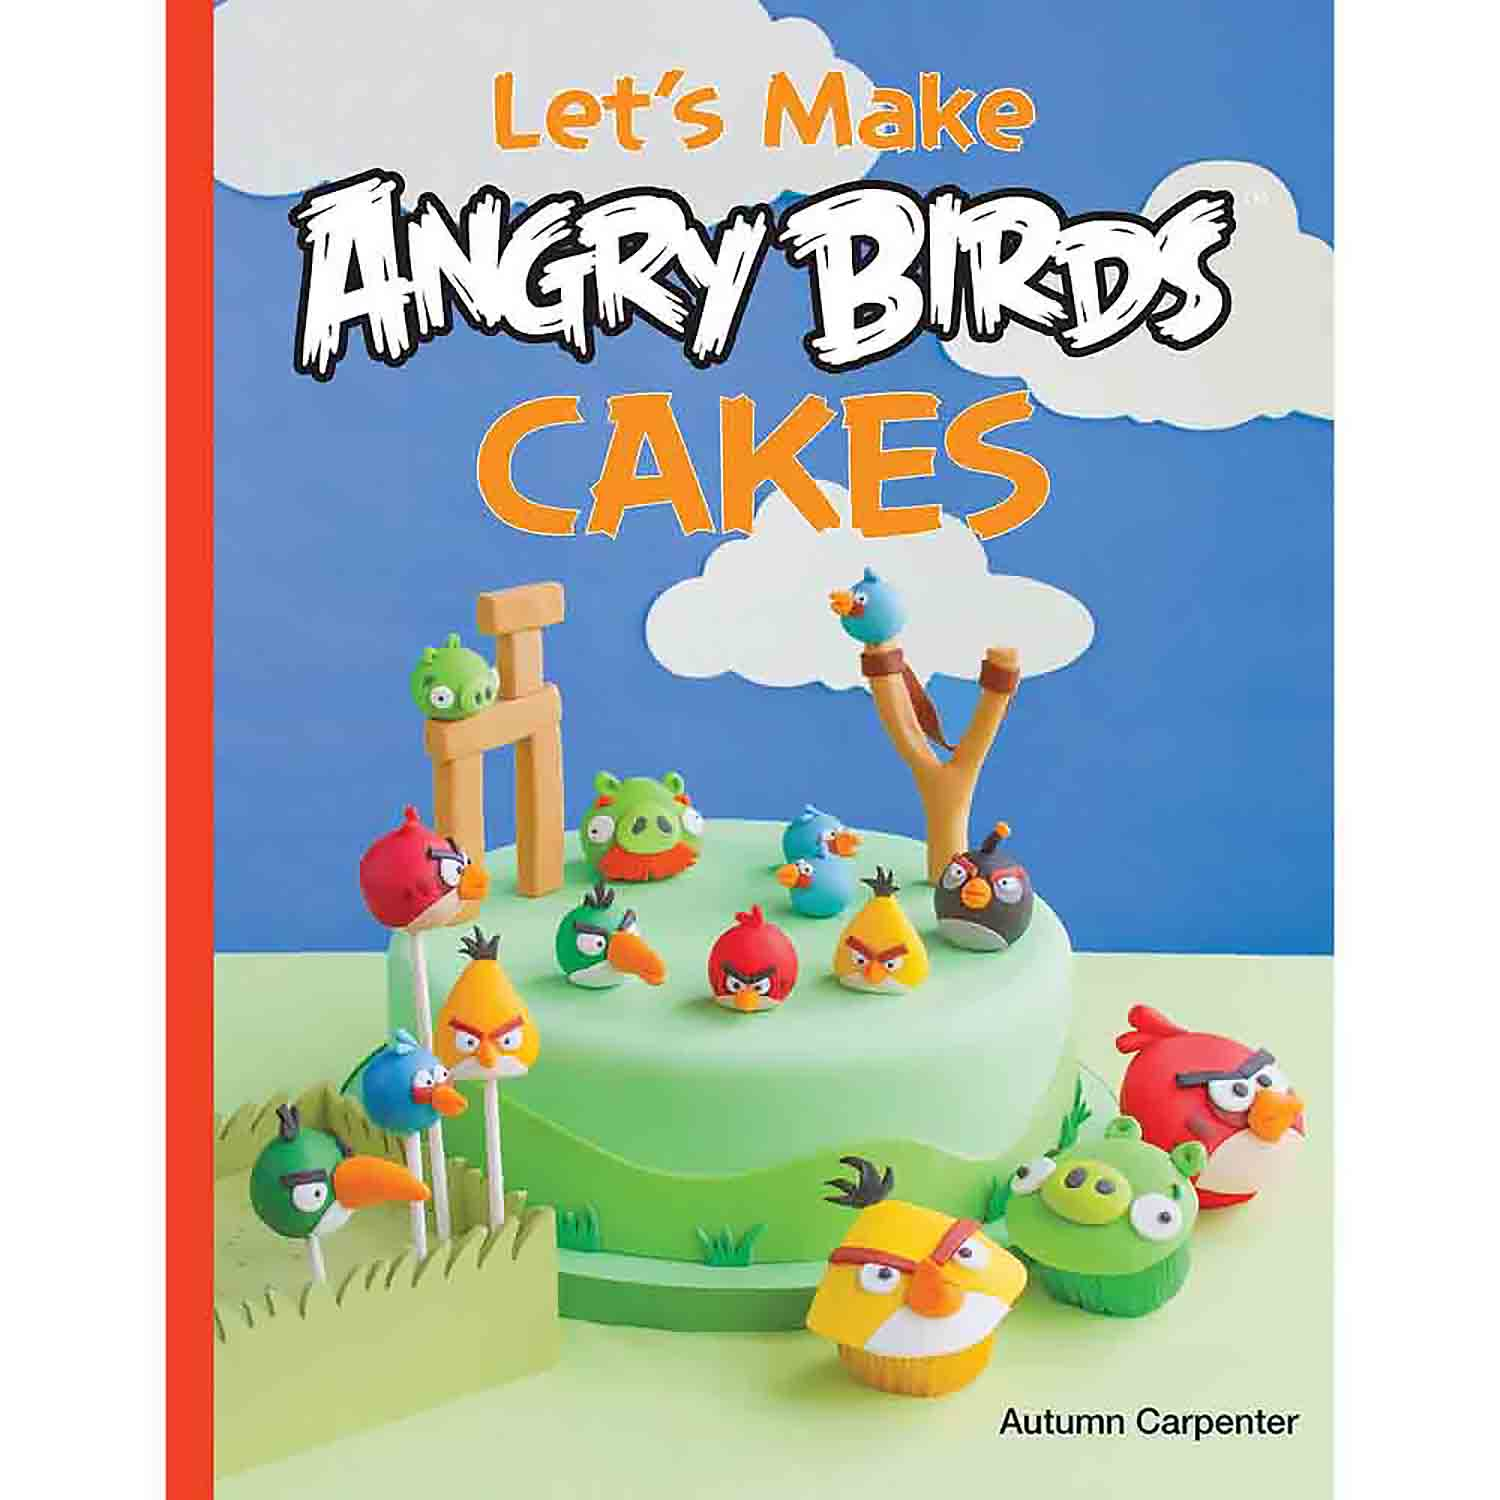 Carpenter - Let's Make Angry Birds Cakes